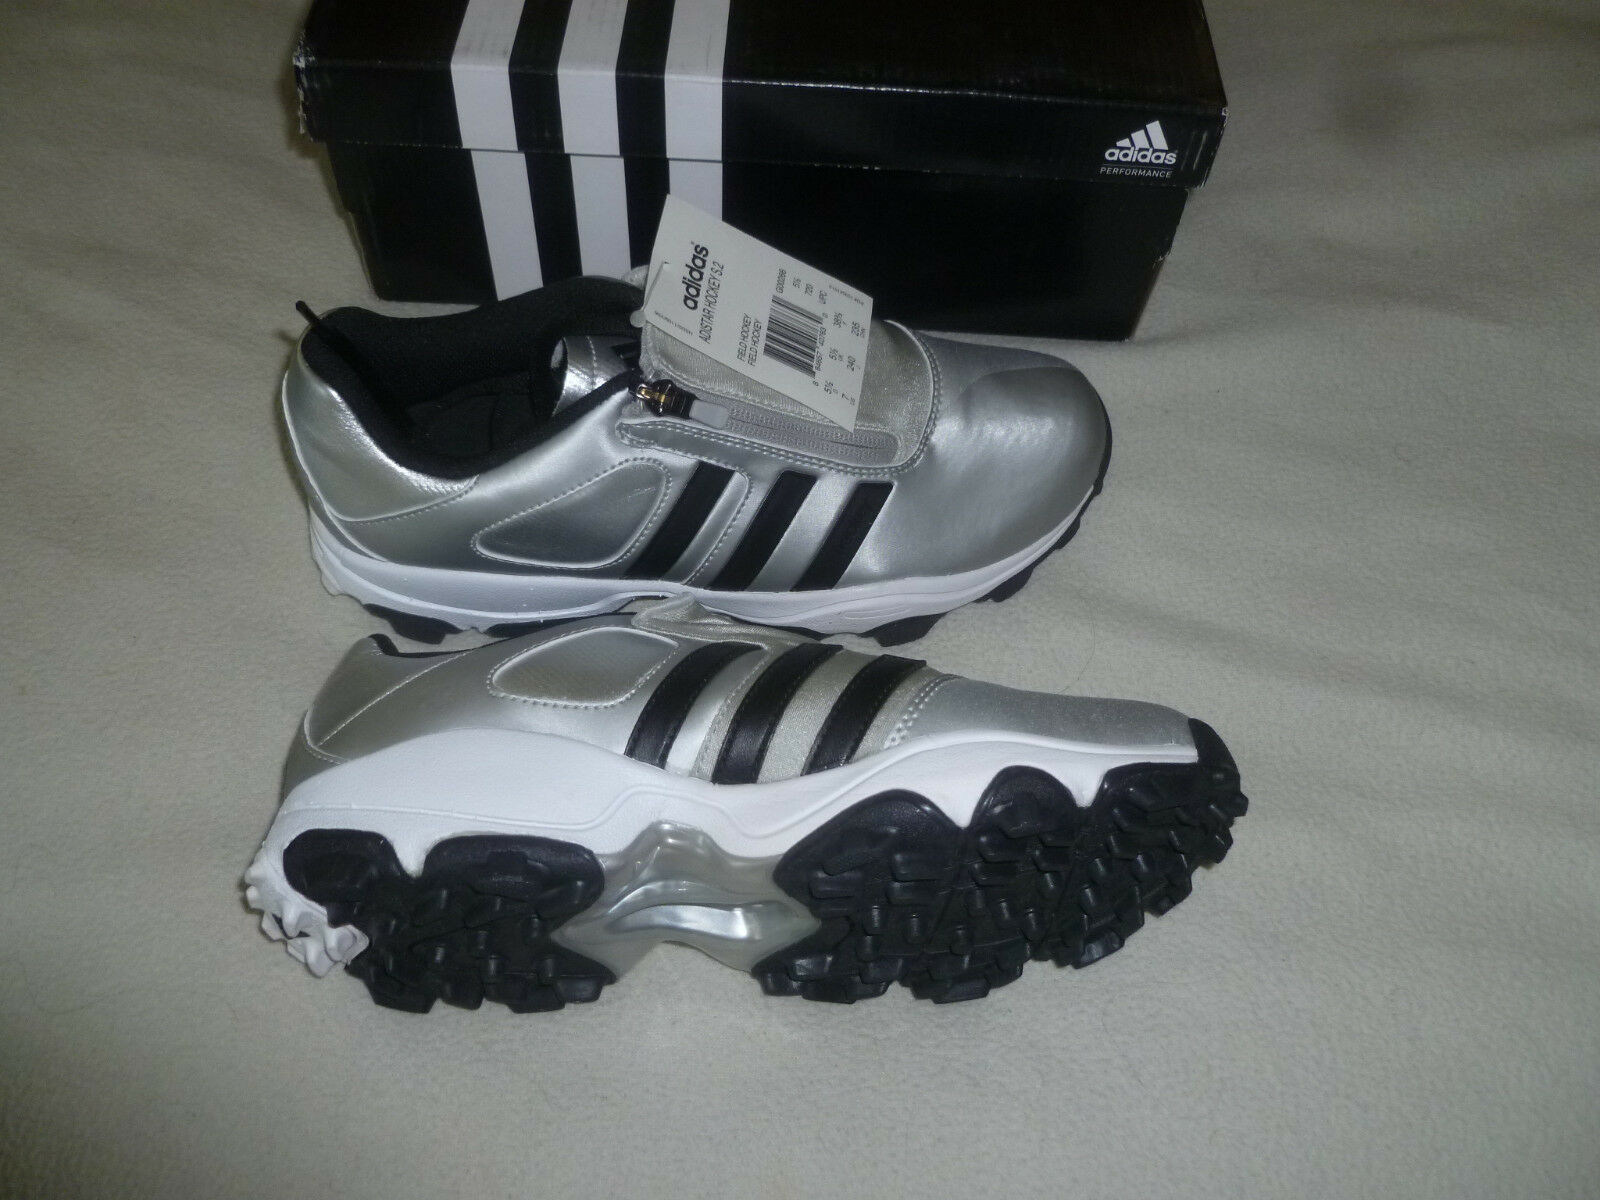 09446368a adidas Adistar Hockey S.2 N Womans Field Hockey Shoes Silver Black Golf 10  for sale online